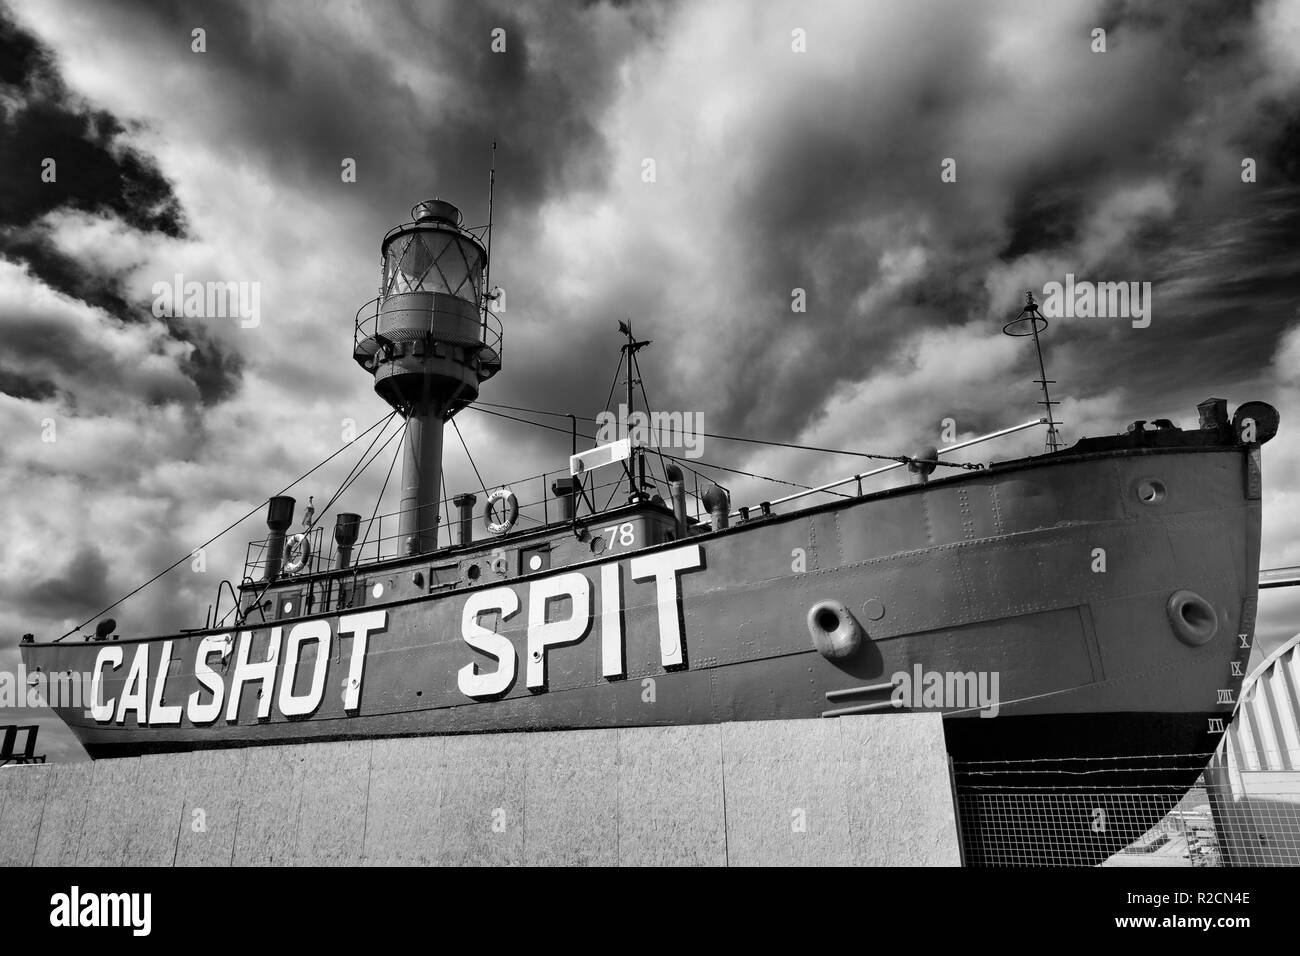 Calshot Spit Lightship, Southampton, Hampshire, England, United Kingdom - Stock Image